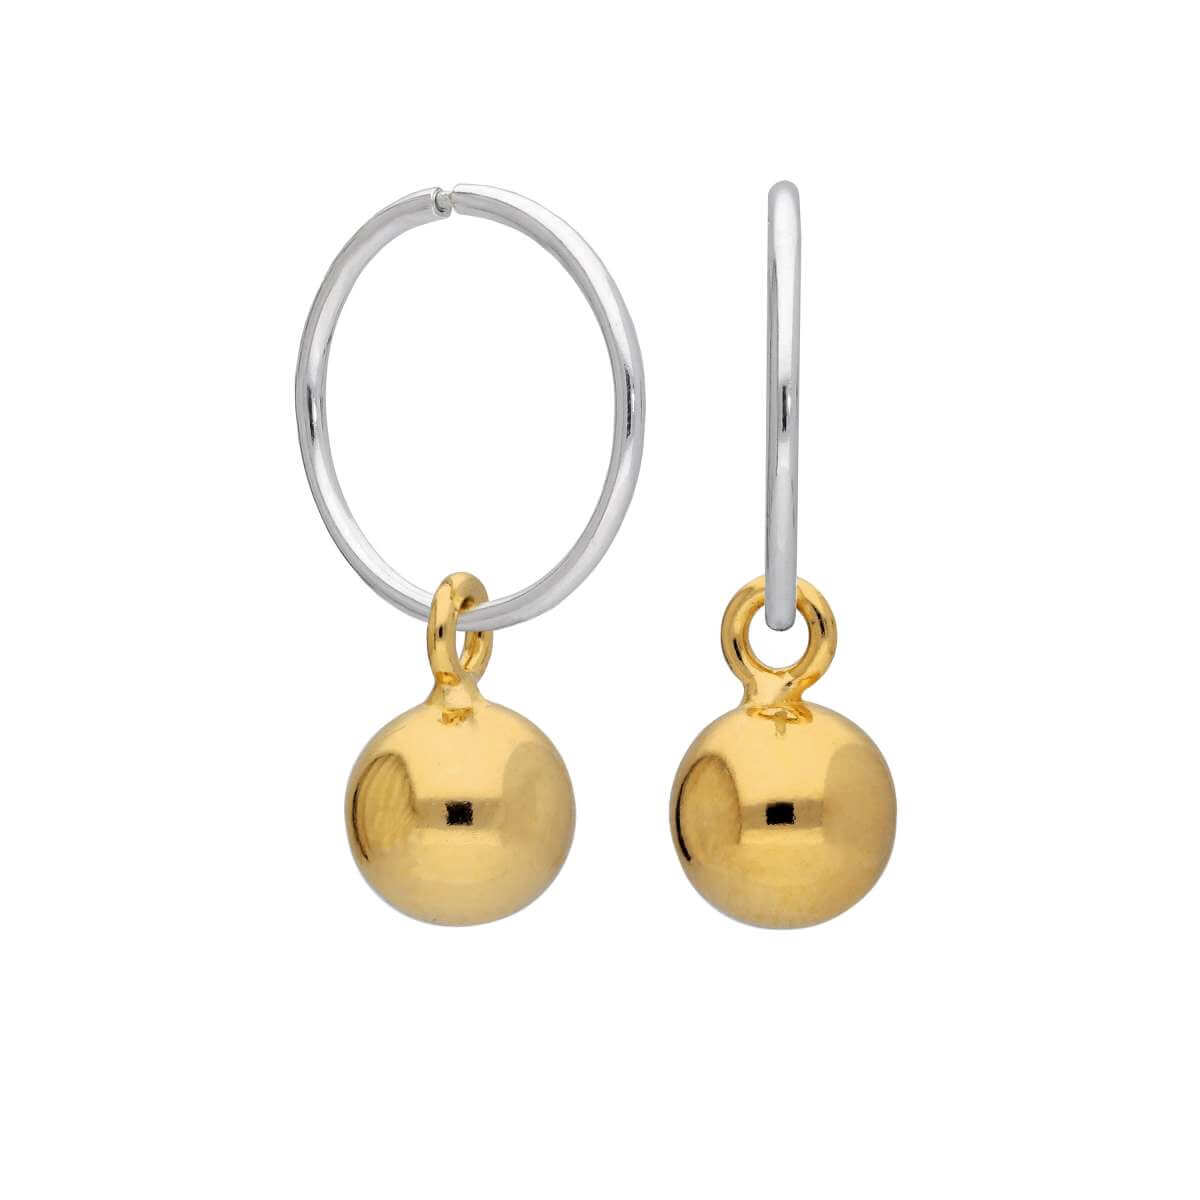 Gold Plated Sterling Silver Bauble Charm Hoop 12mm Earrings